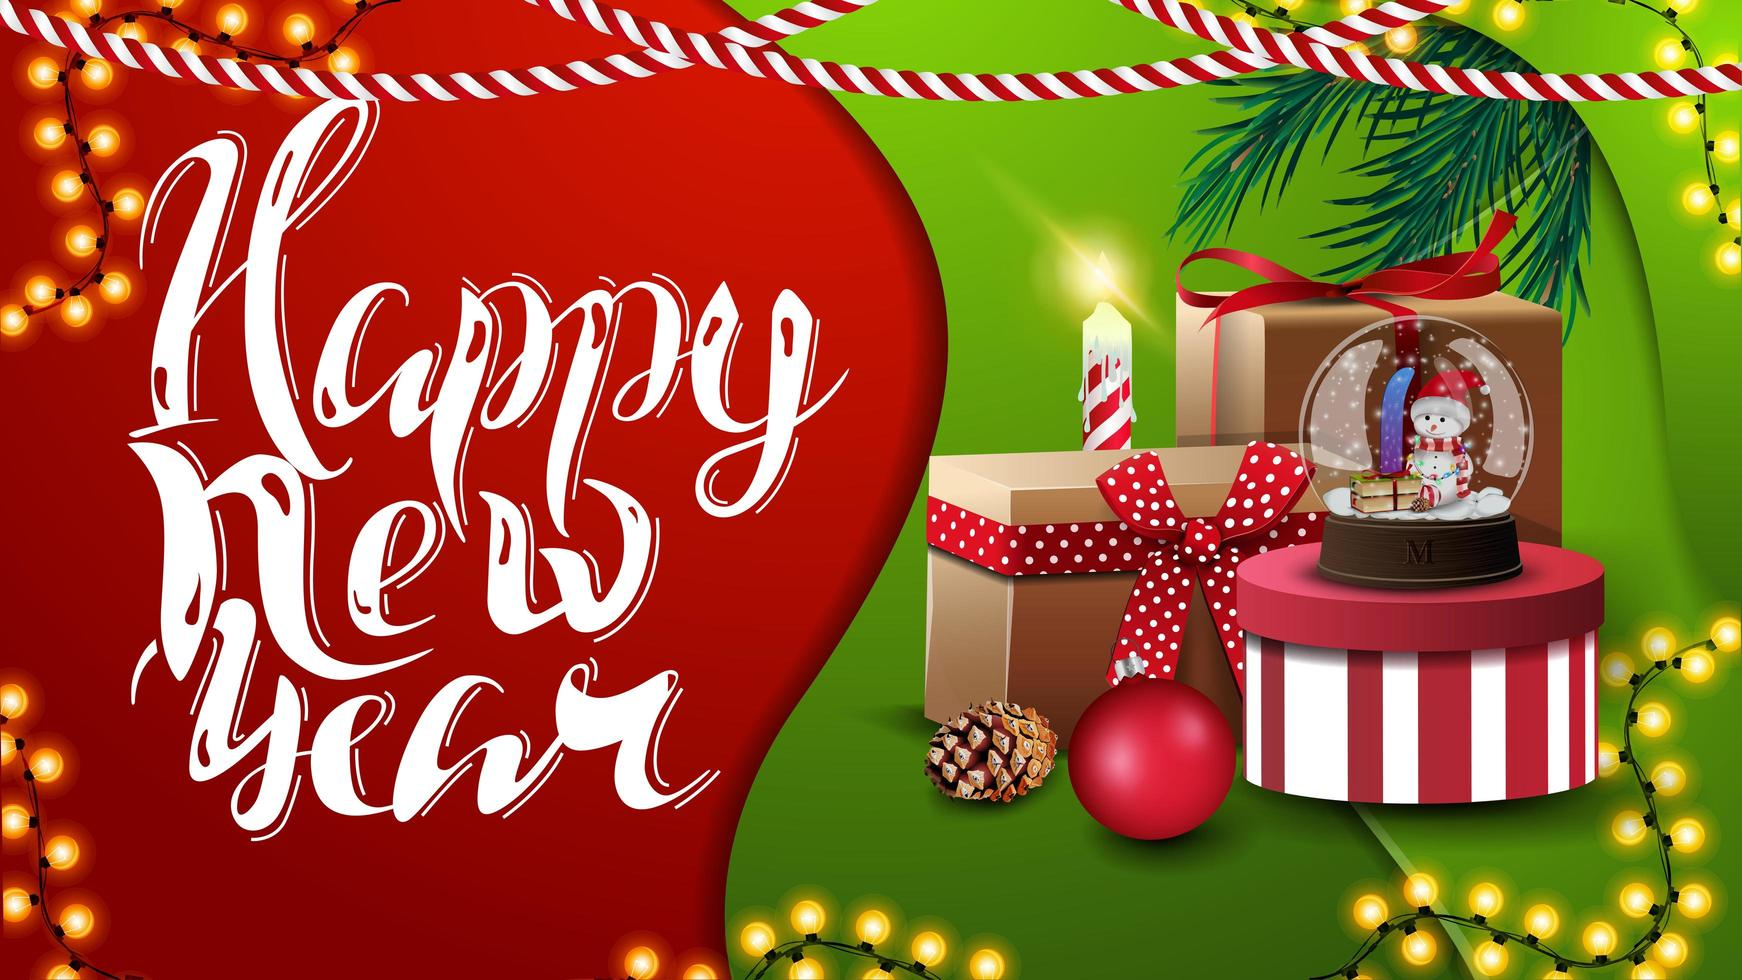 Happy New Year, greeting red and green postcard in material design style with Christmas presents vector